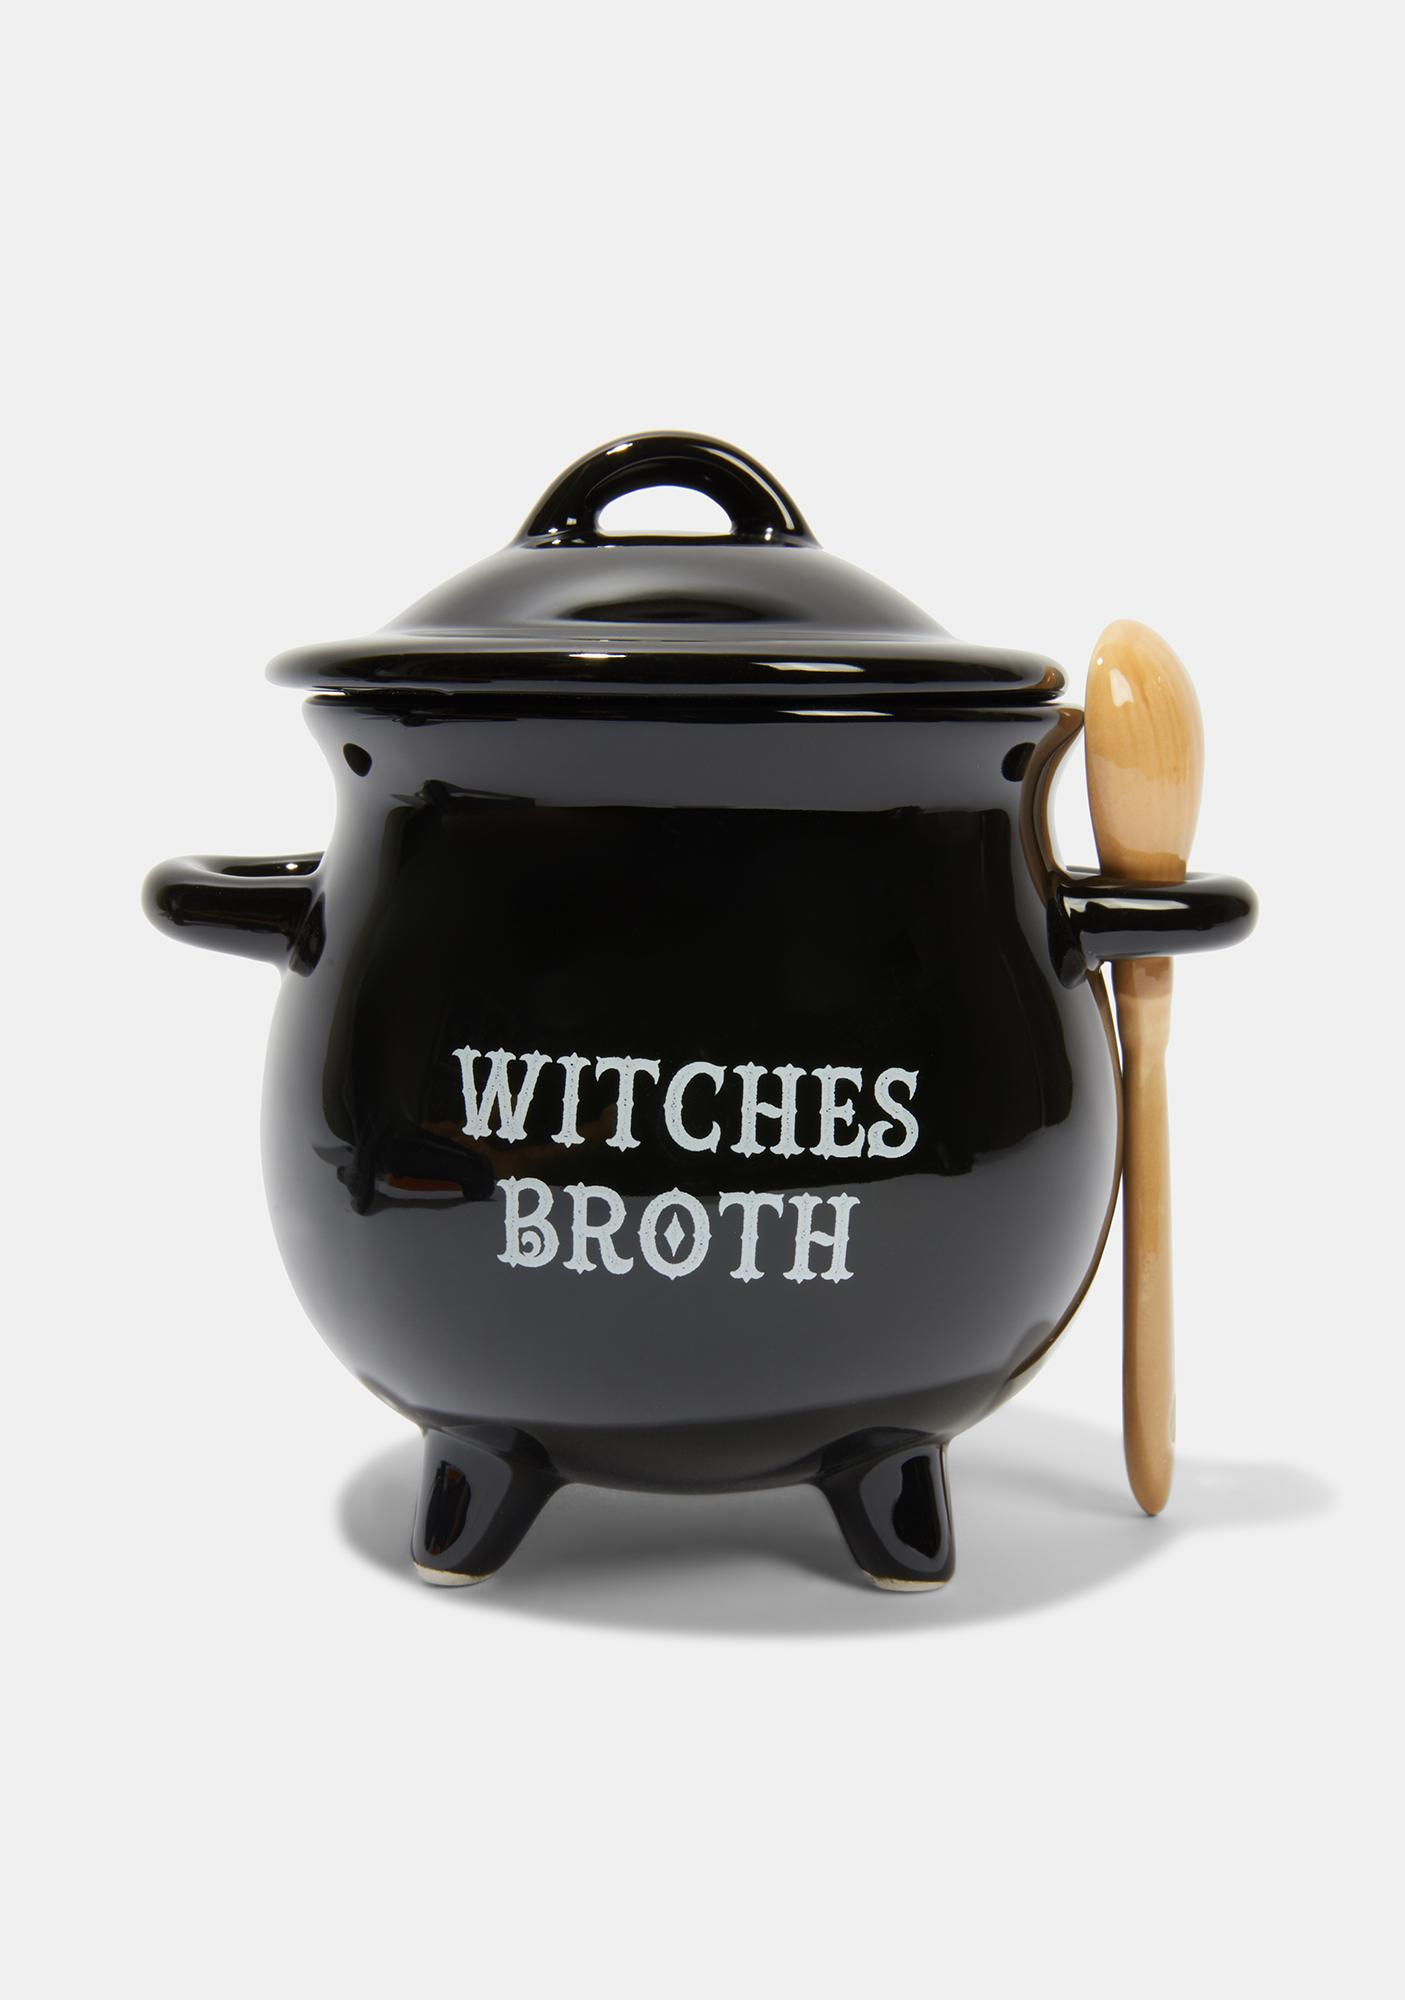 Witches Broth Cauldron Soup